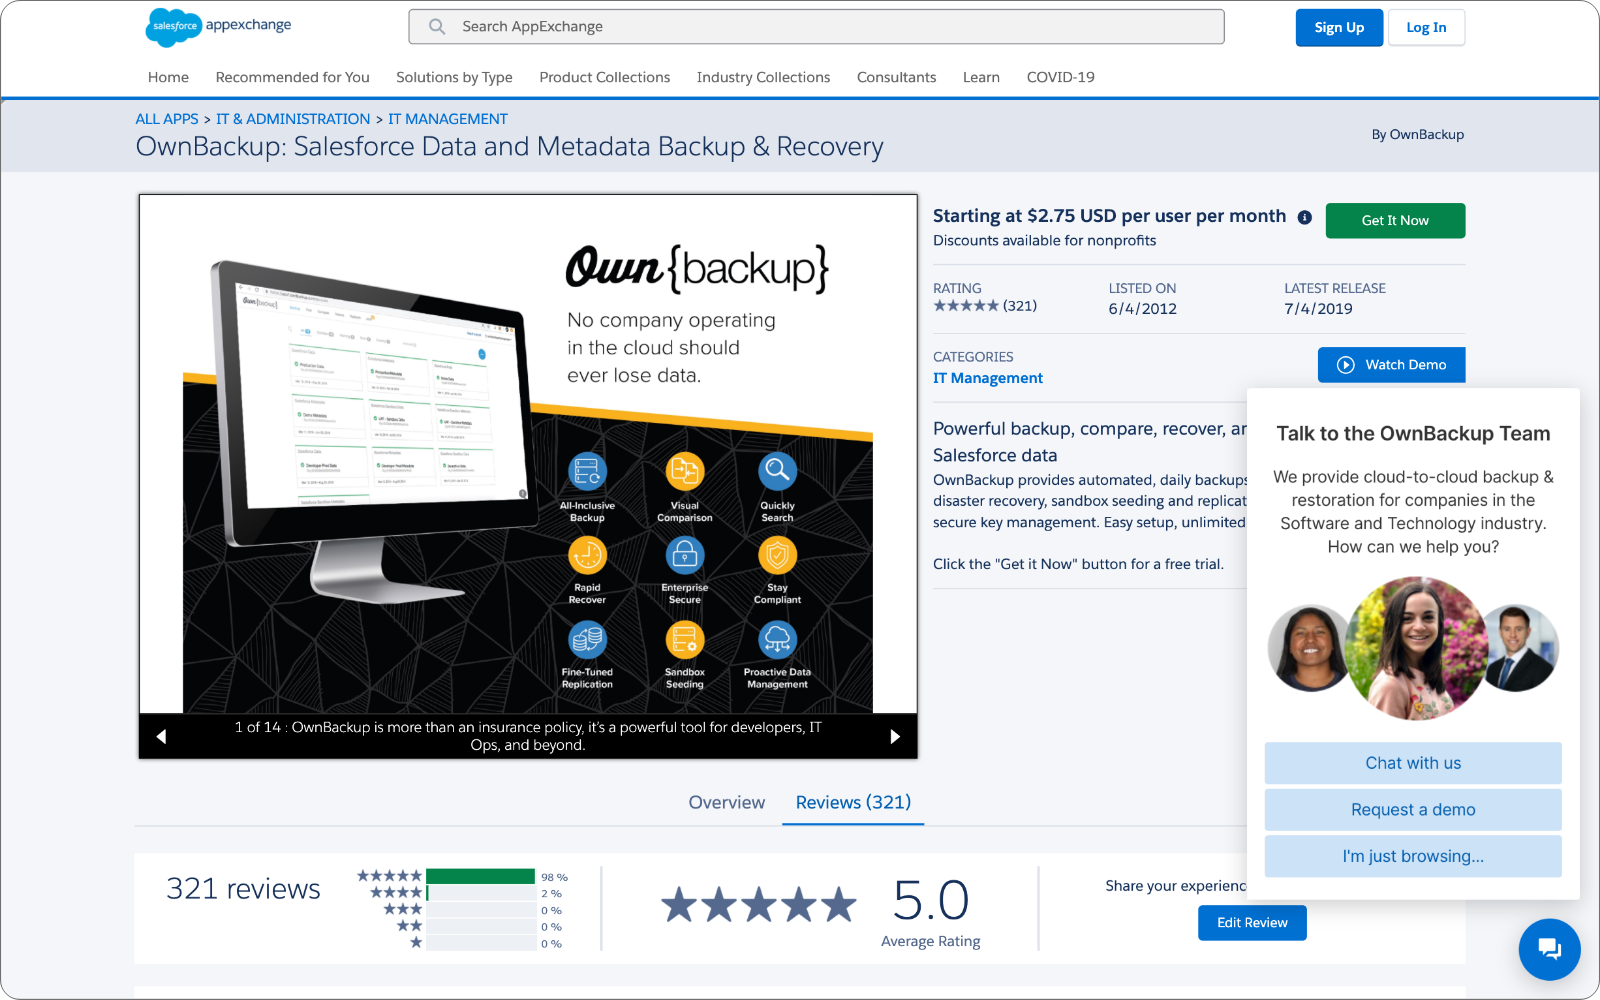 The OwnBackup AppExchange listing with AppExchange Chat